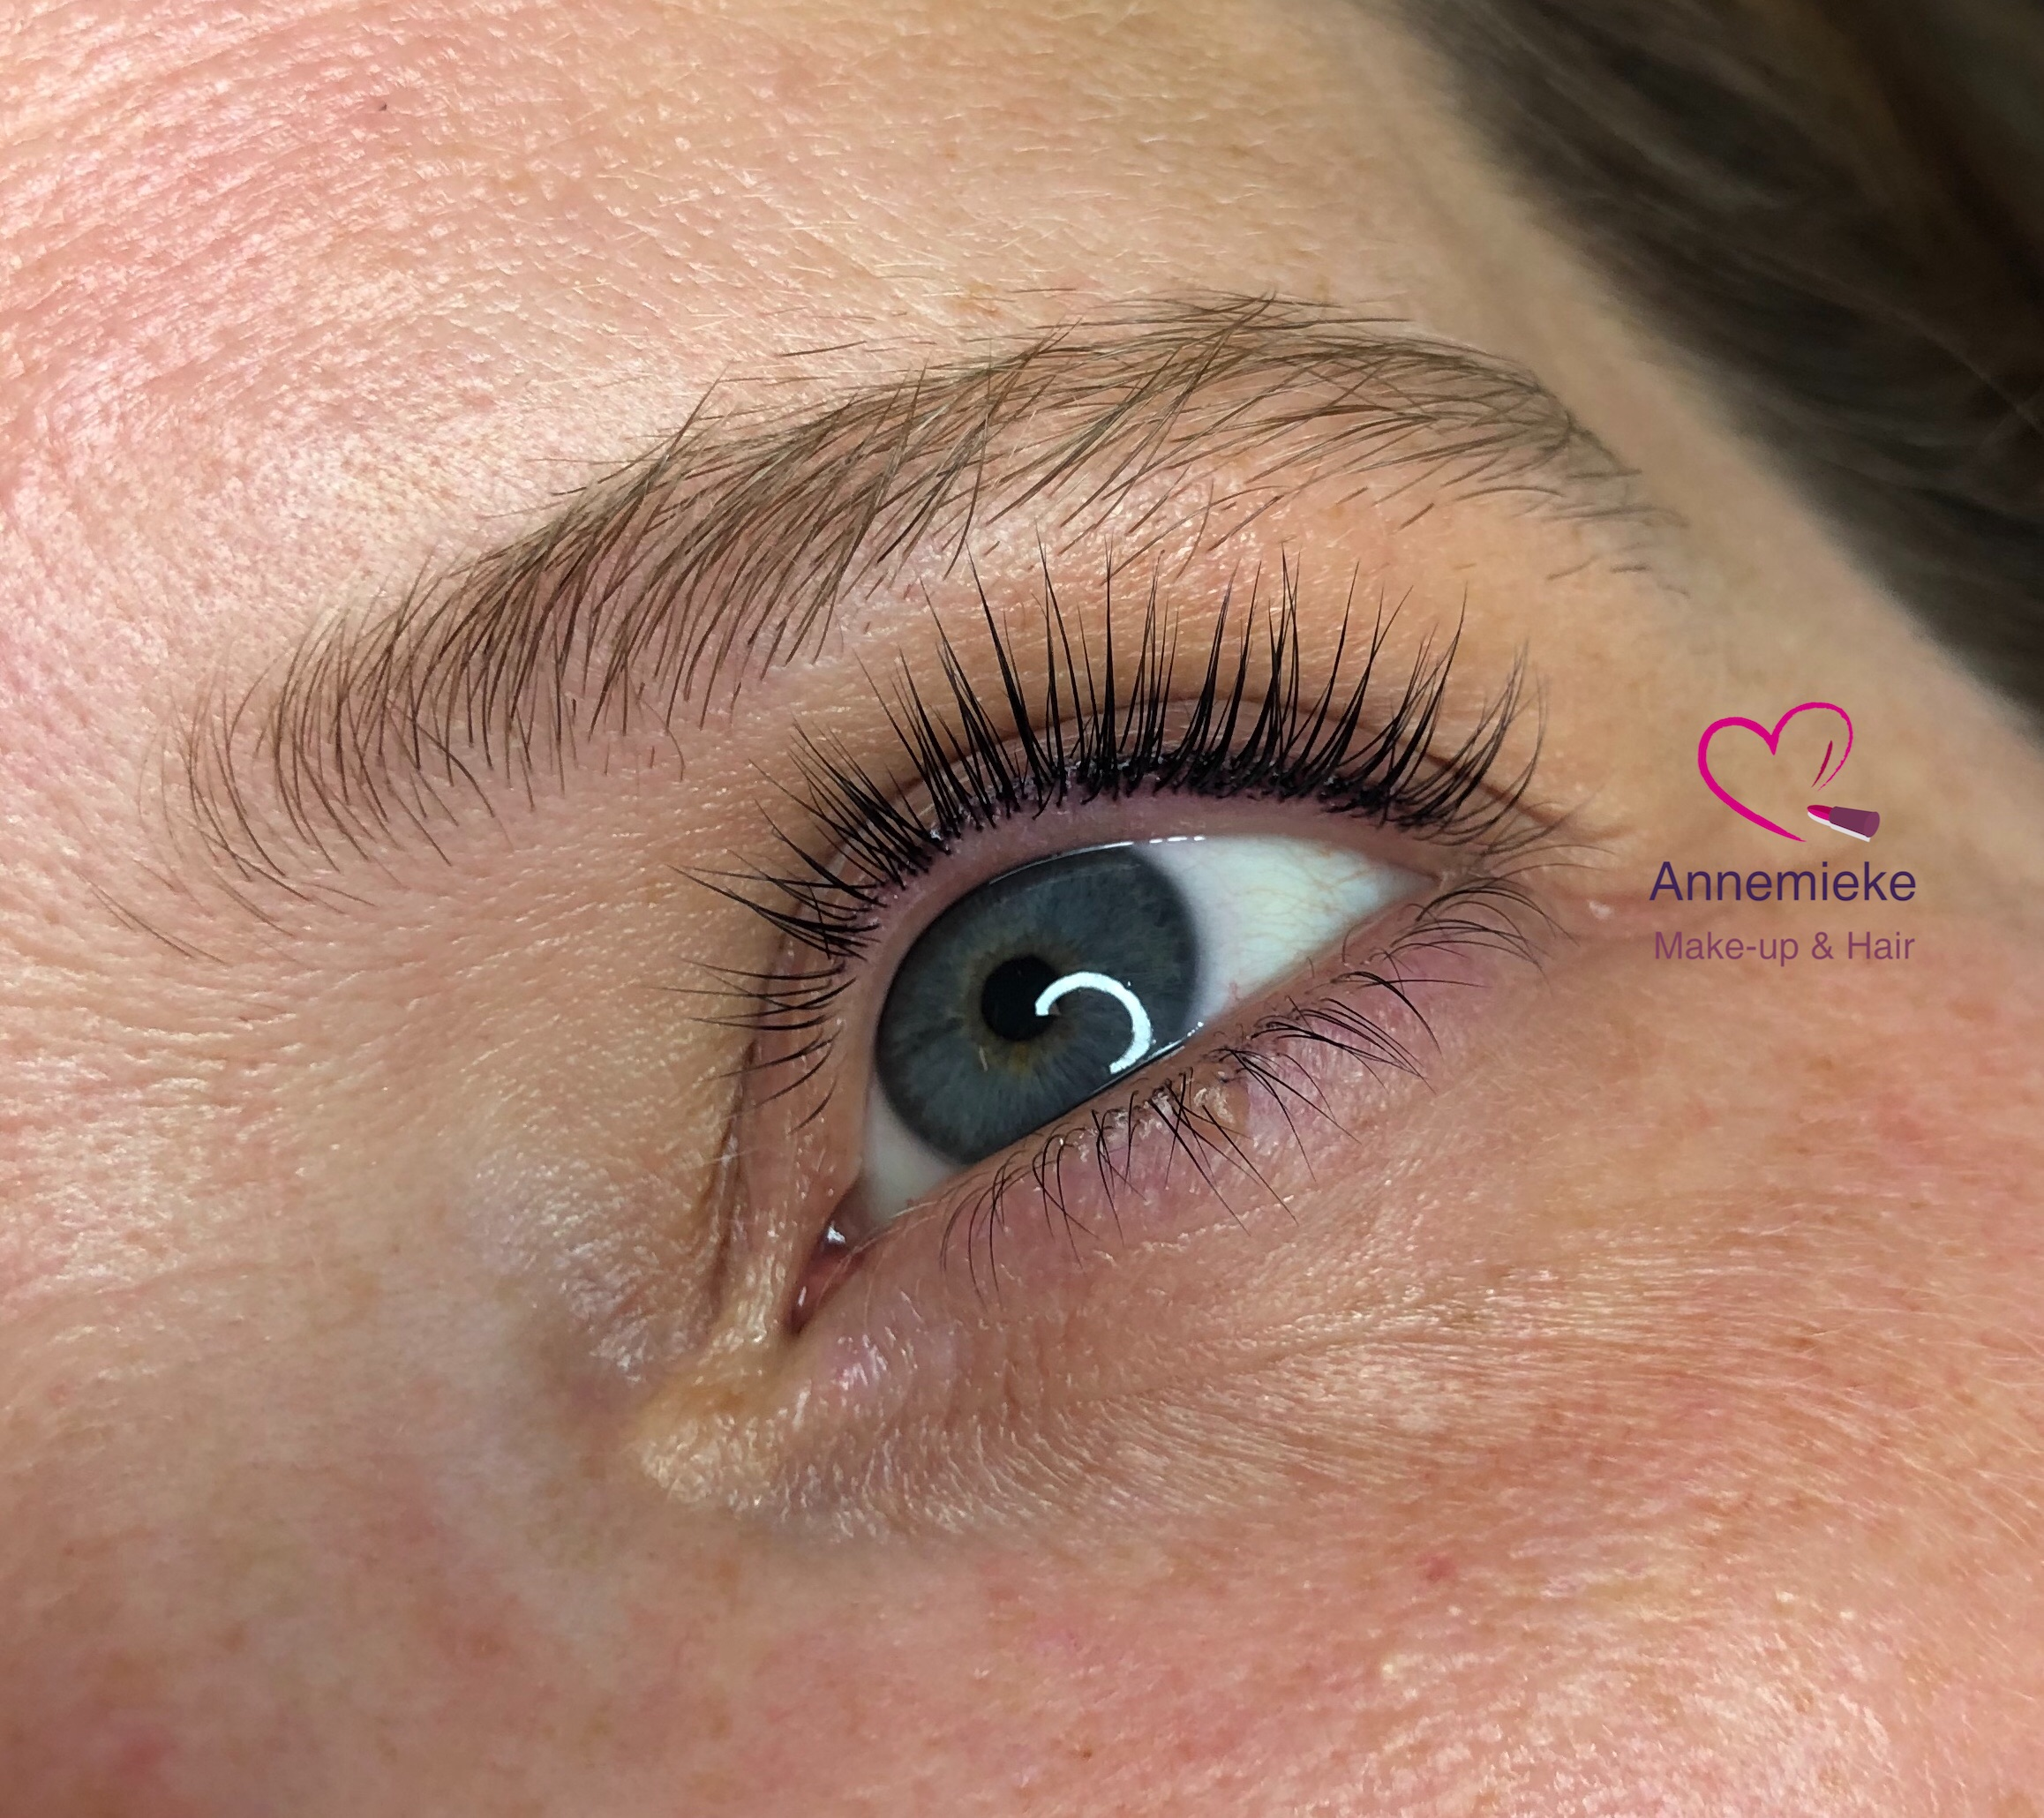 Wimperlift Eindhoven Annemieke Make-up & Hair